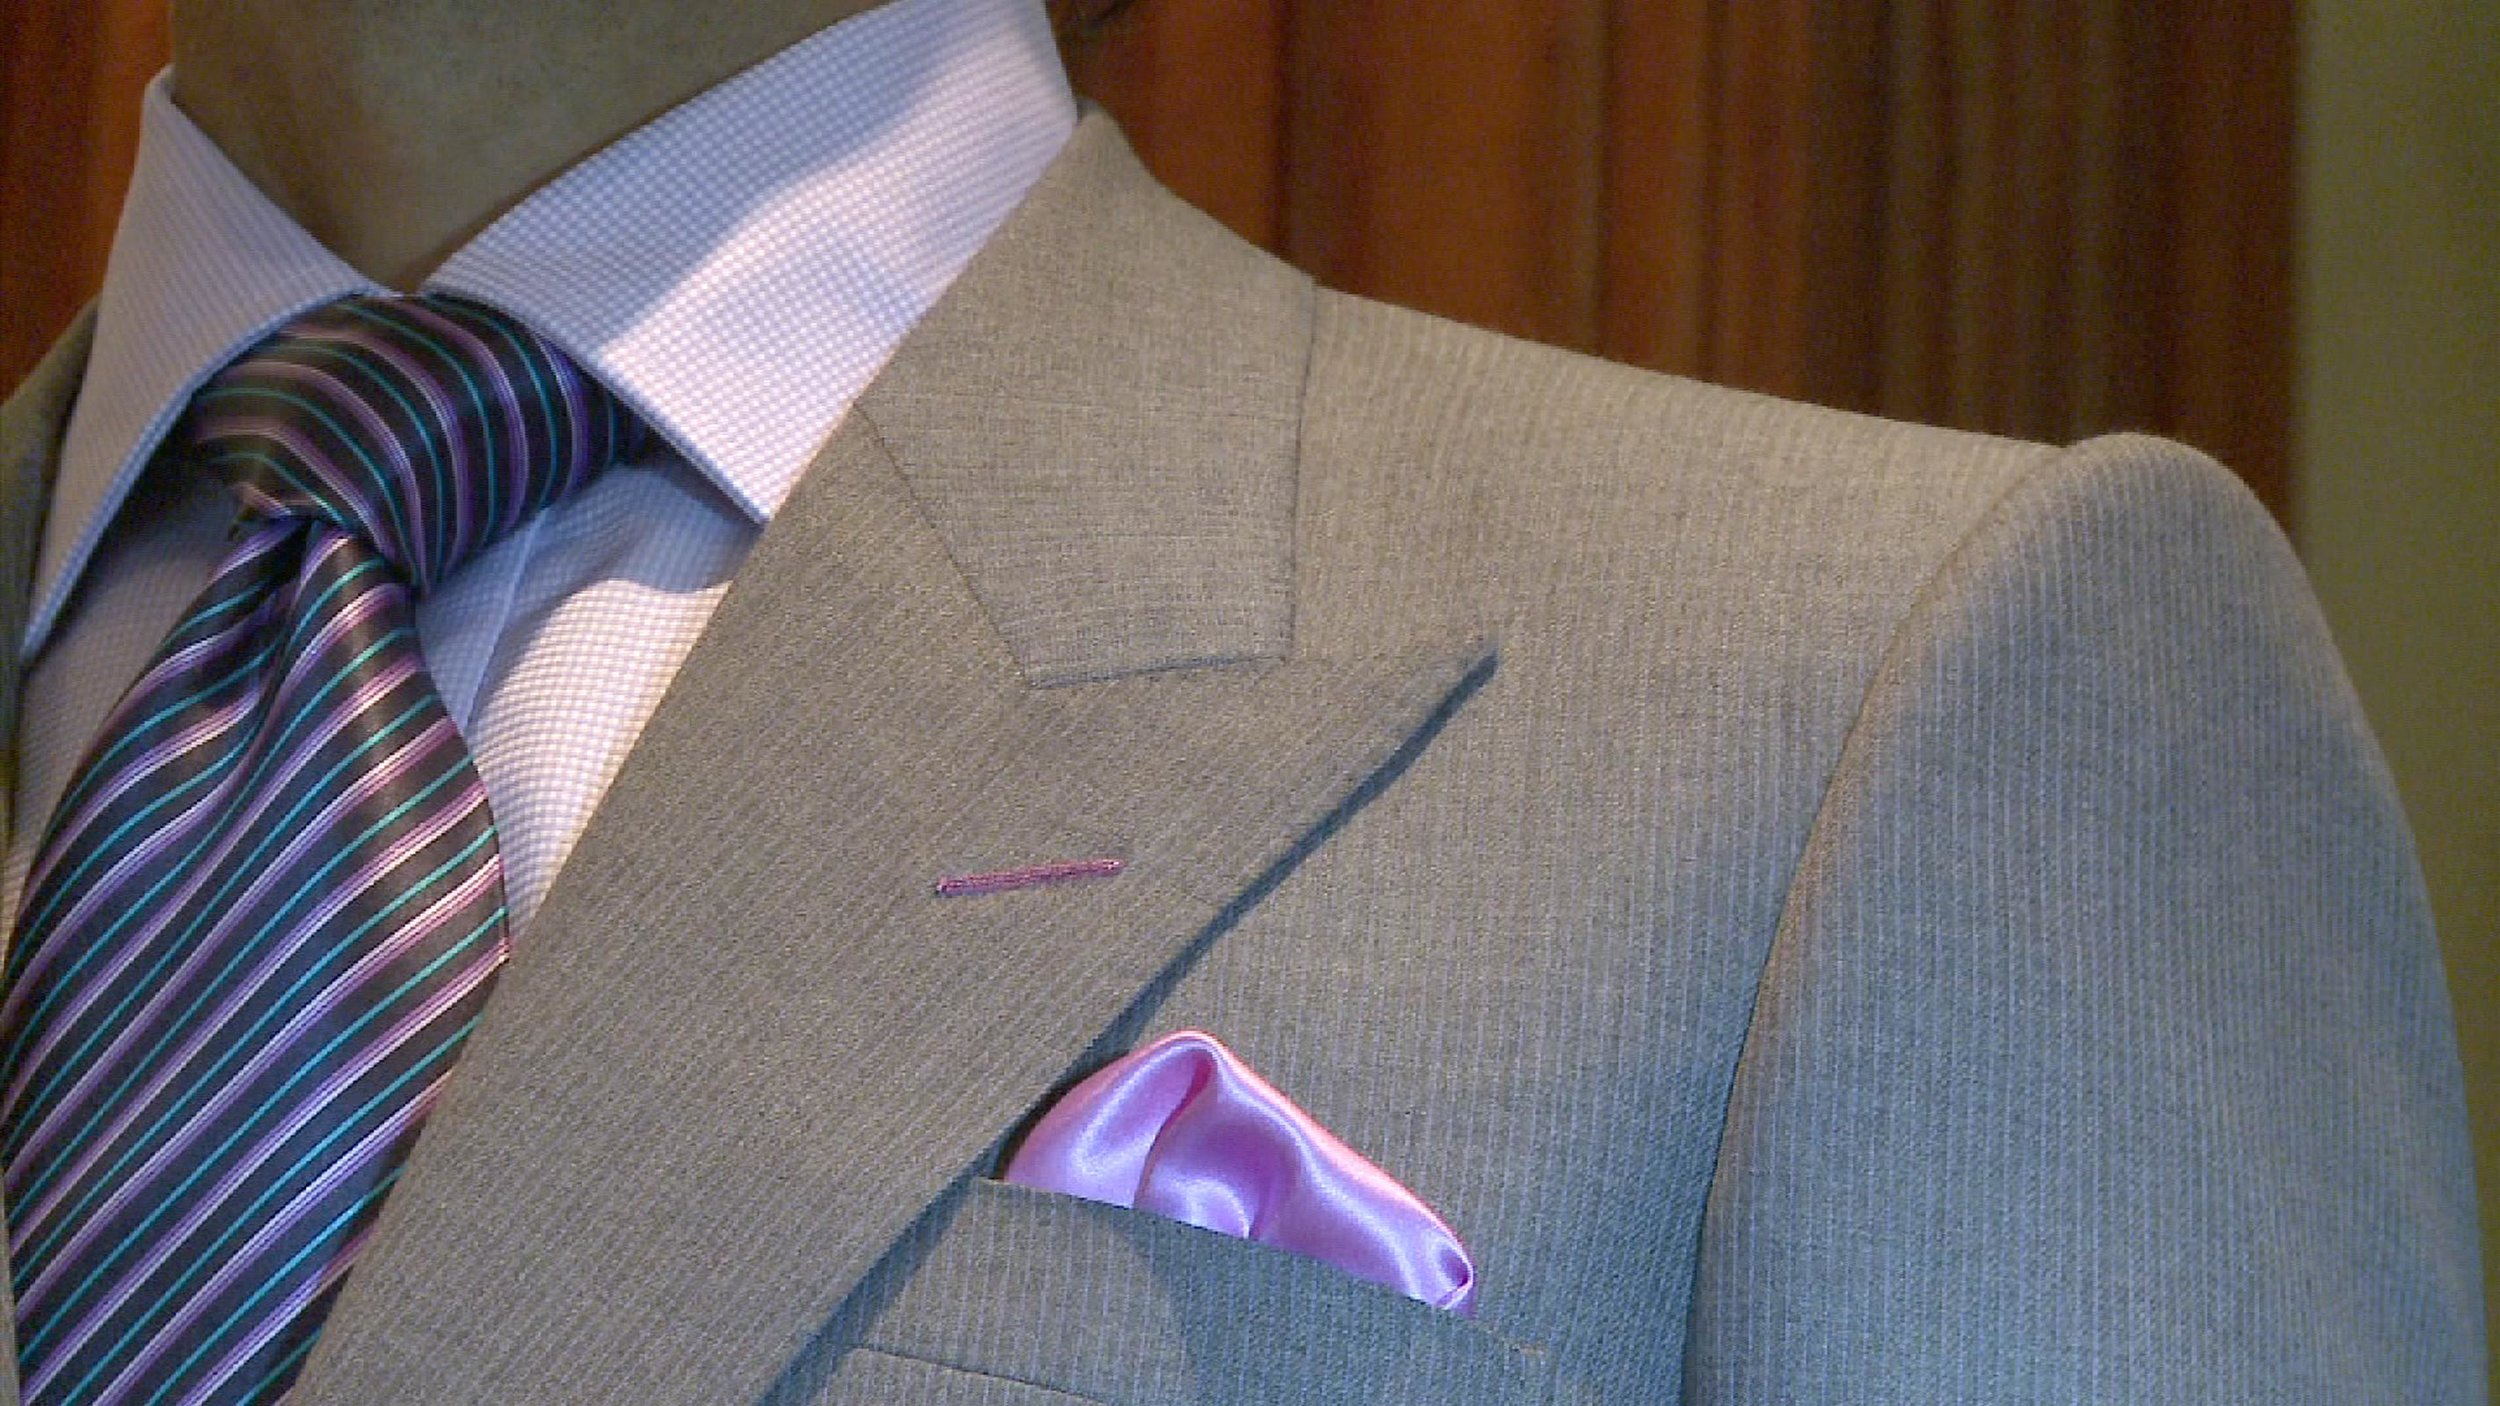 Maurice Sedwell was established on Savile Row in 1938